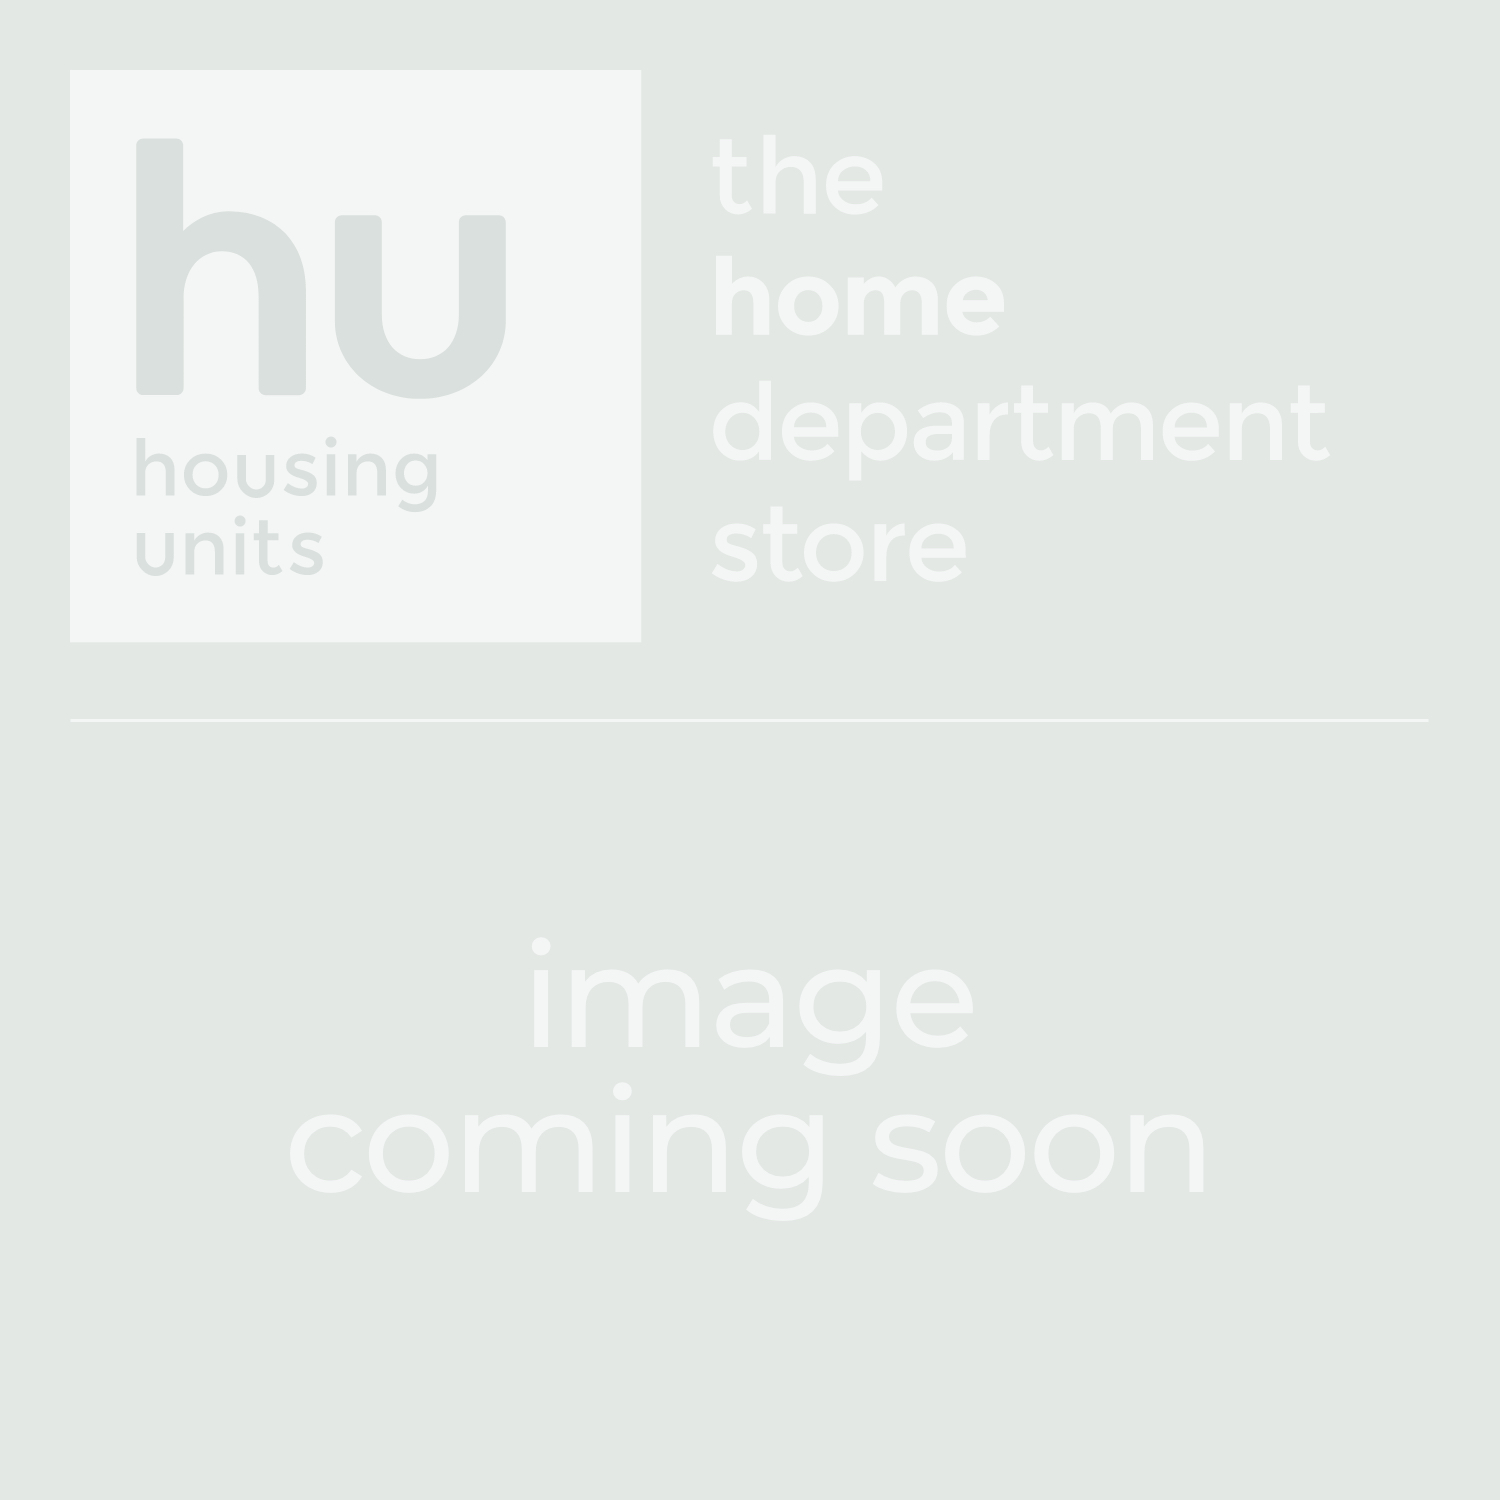 A cute and lovable lion friend by Jellycat